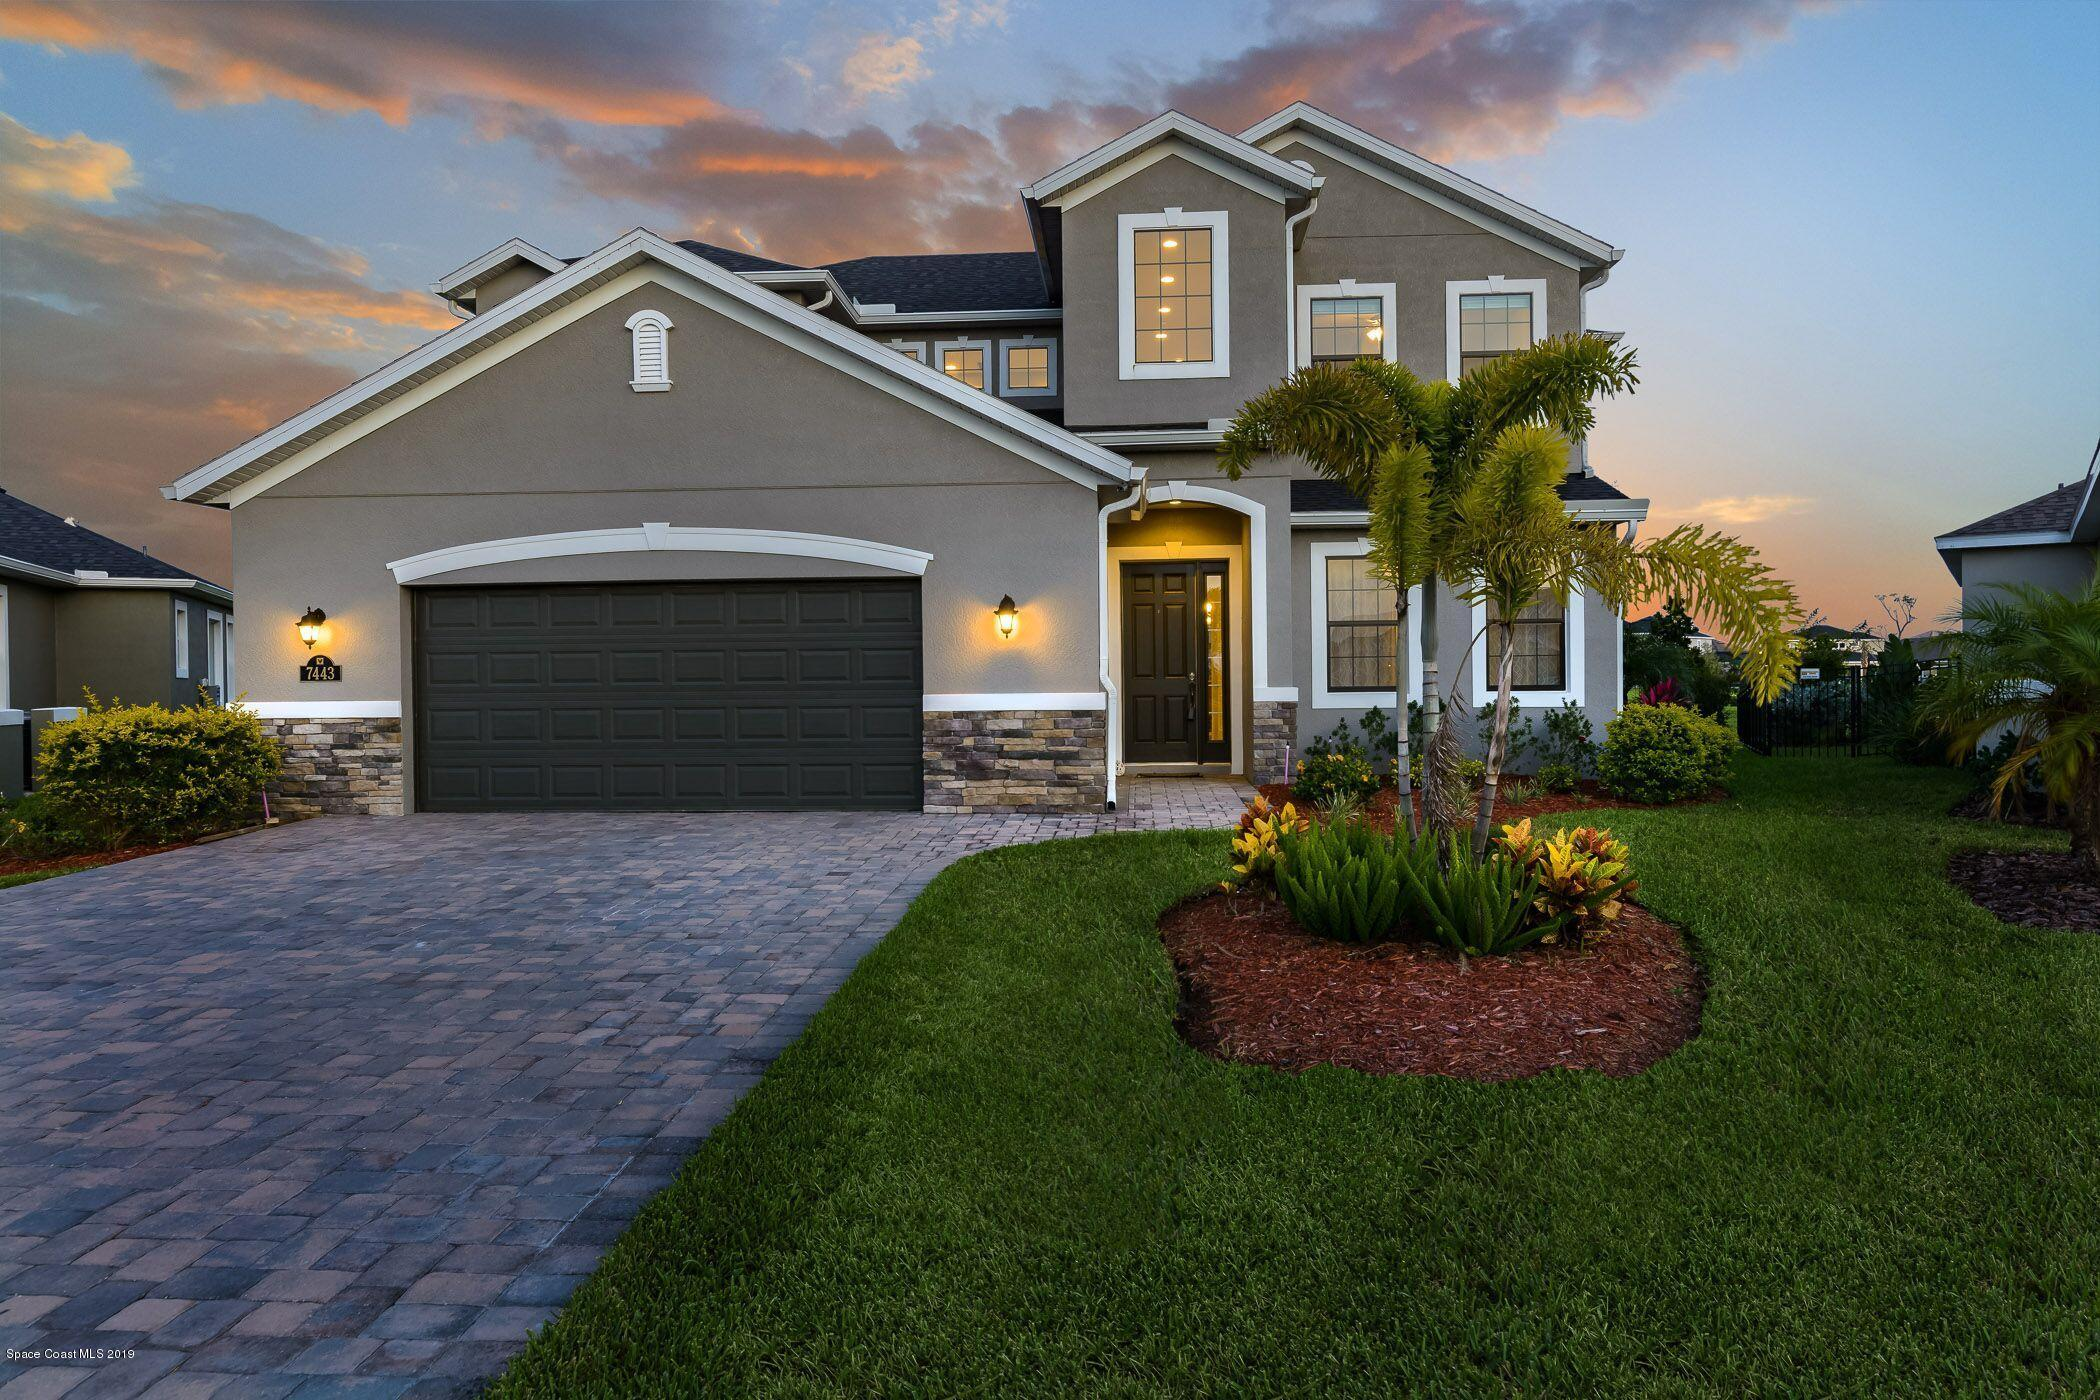 Single Family Homes for Sale at 7443 Drevo Melbourne, Florida 32940 United States